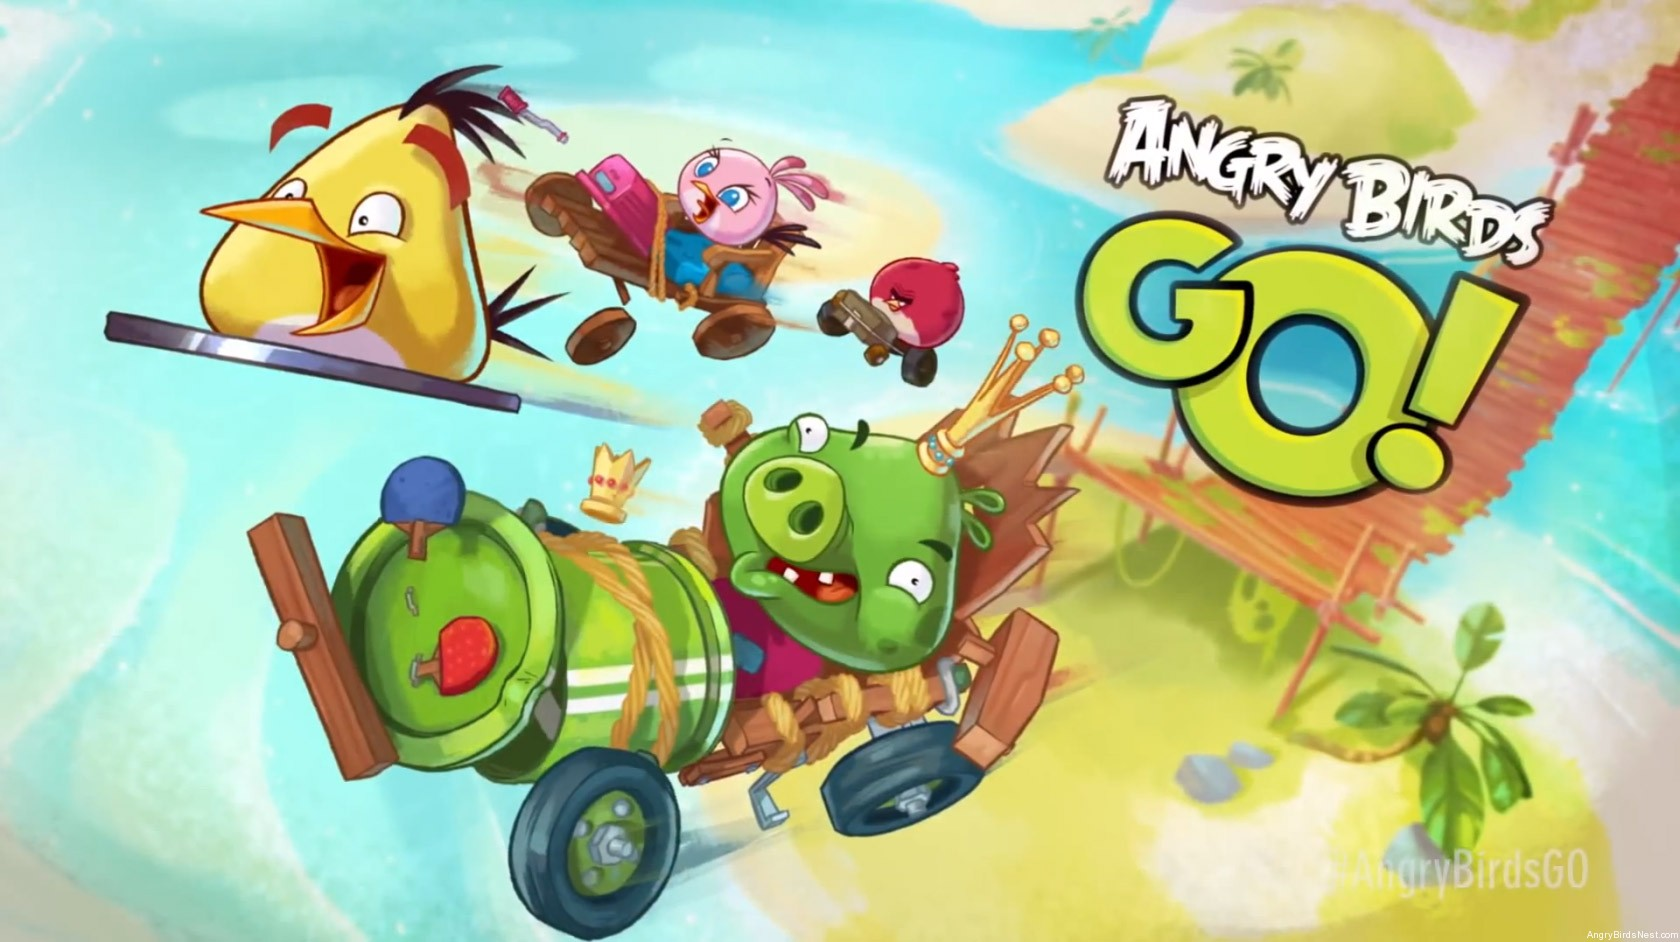 Angry-Birds-Go-Cinematic-Trailer-Wallpaper